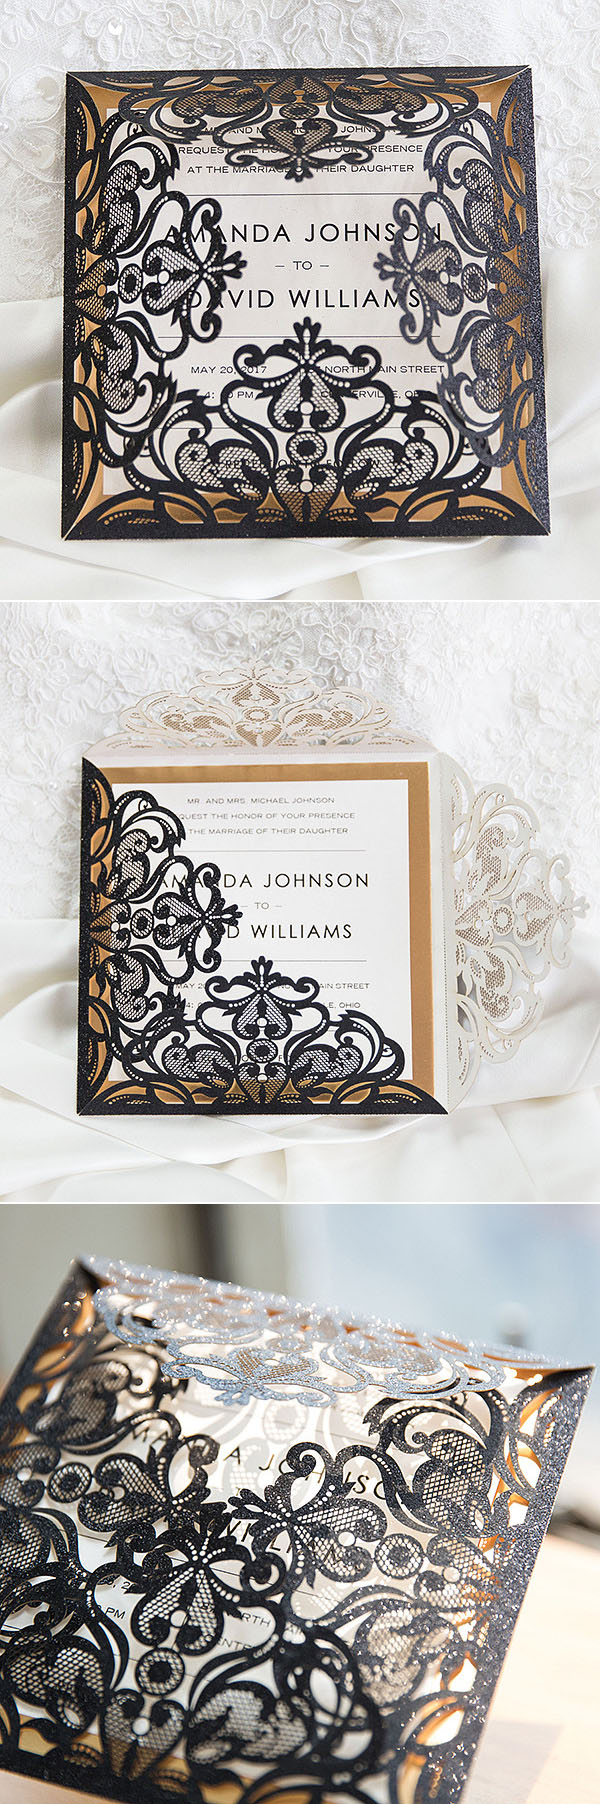 luxury black and white laser cut wedding invitations with gold glittery mirror paper